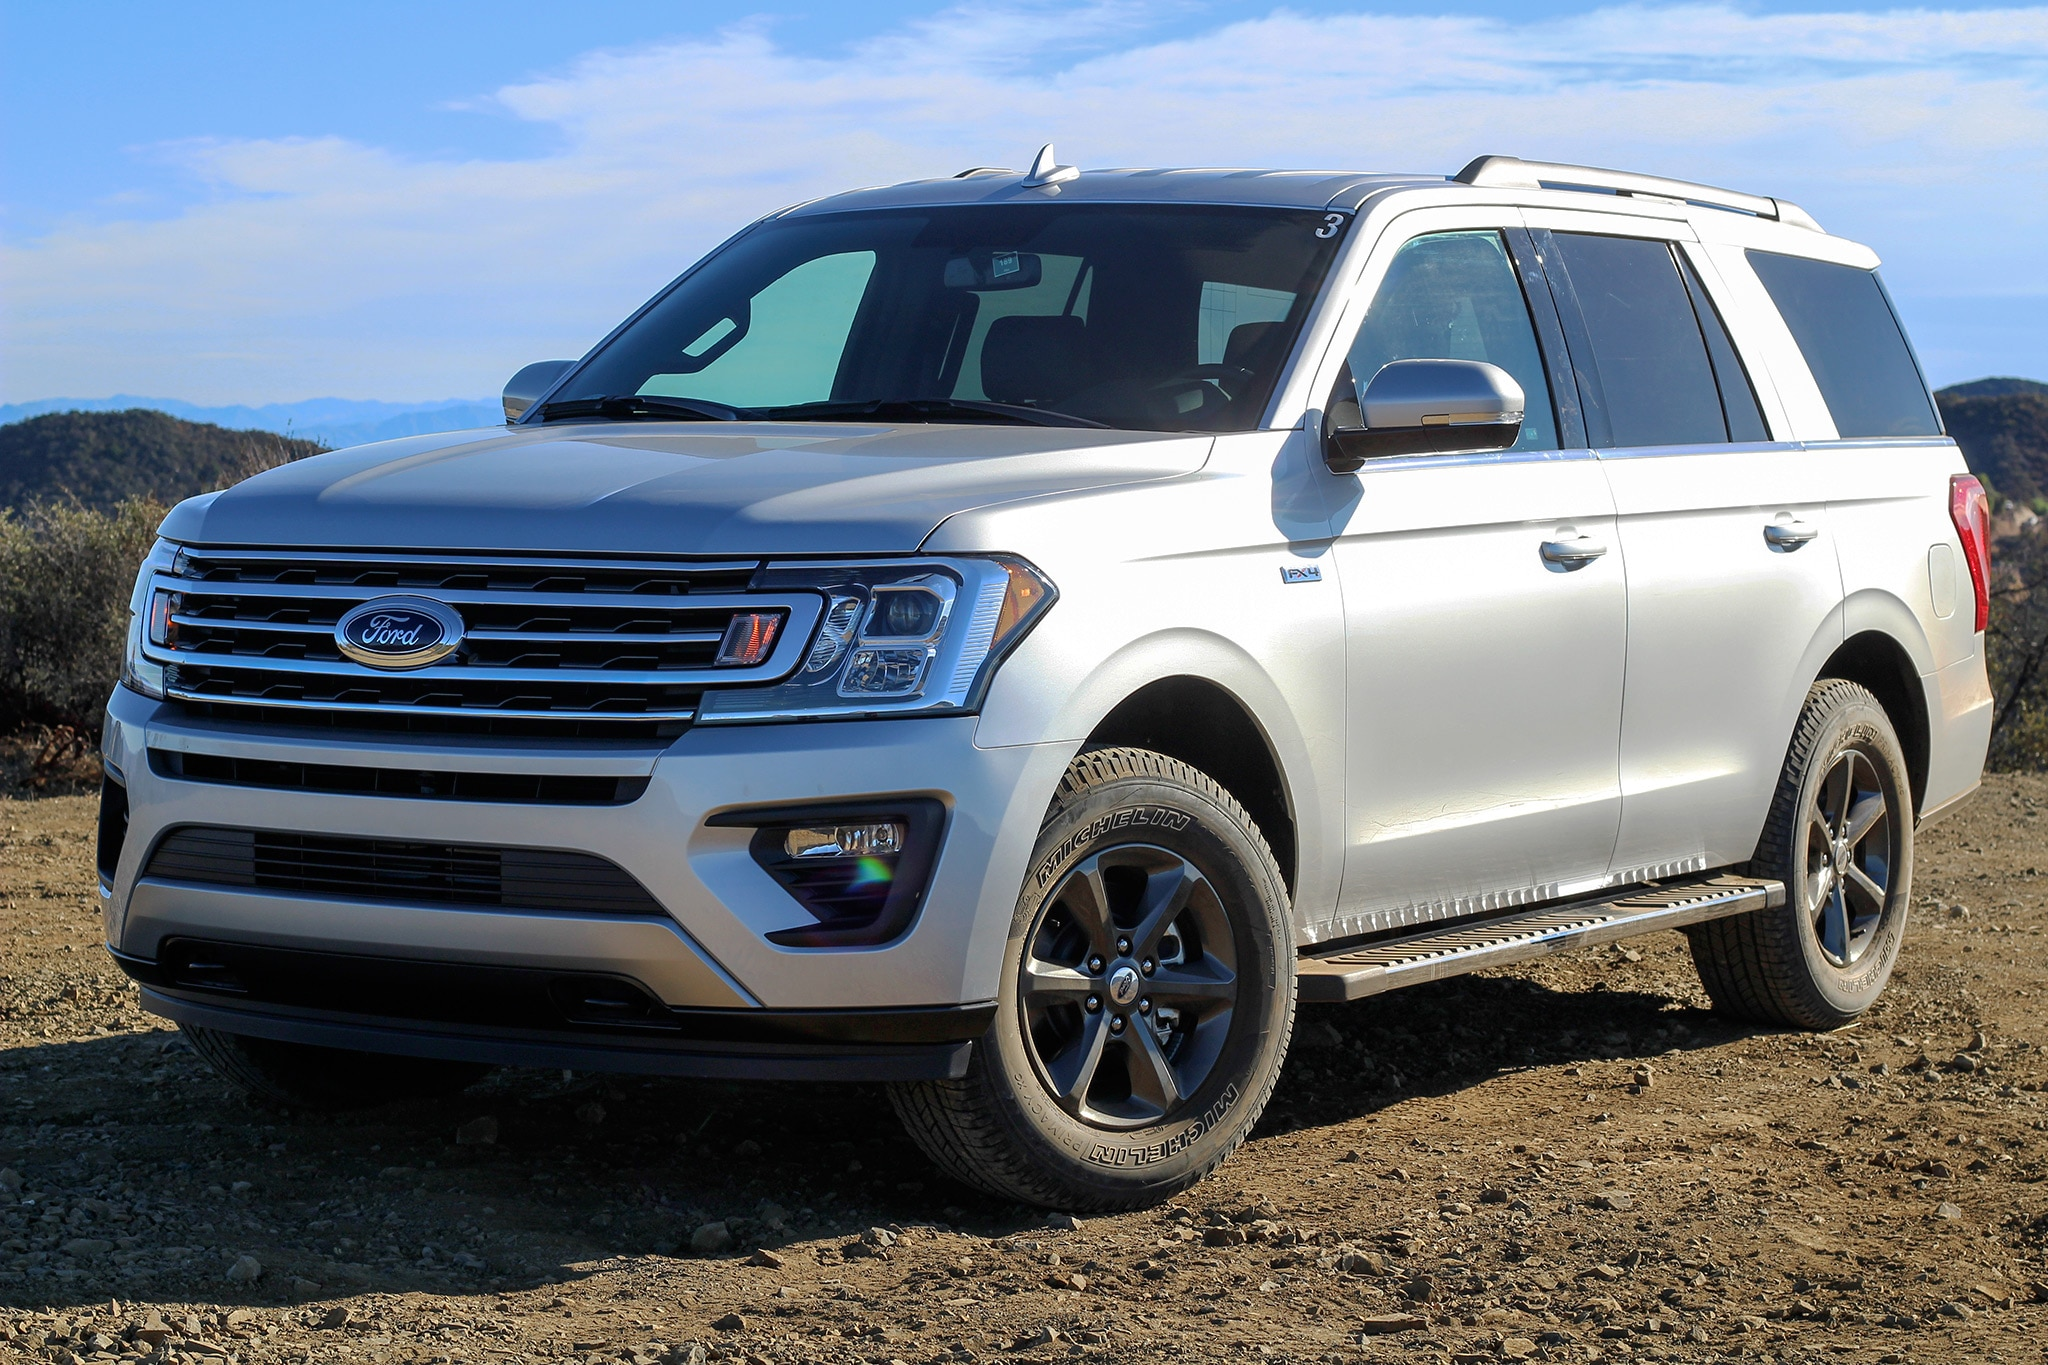 2018 Ford Expedition Front Three Quarter 04